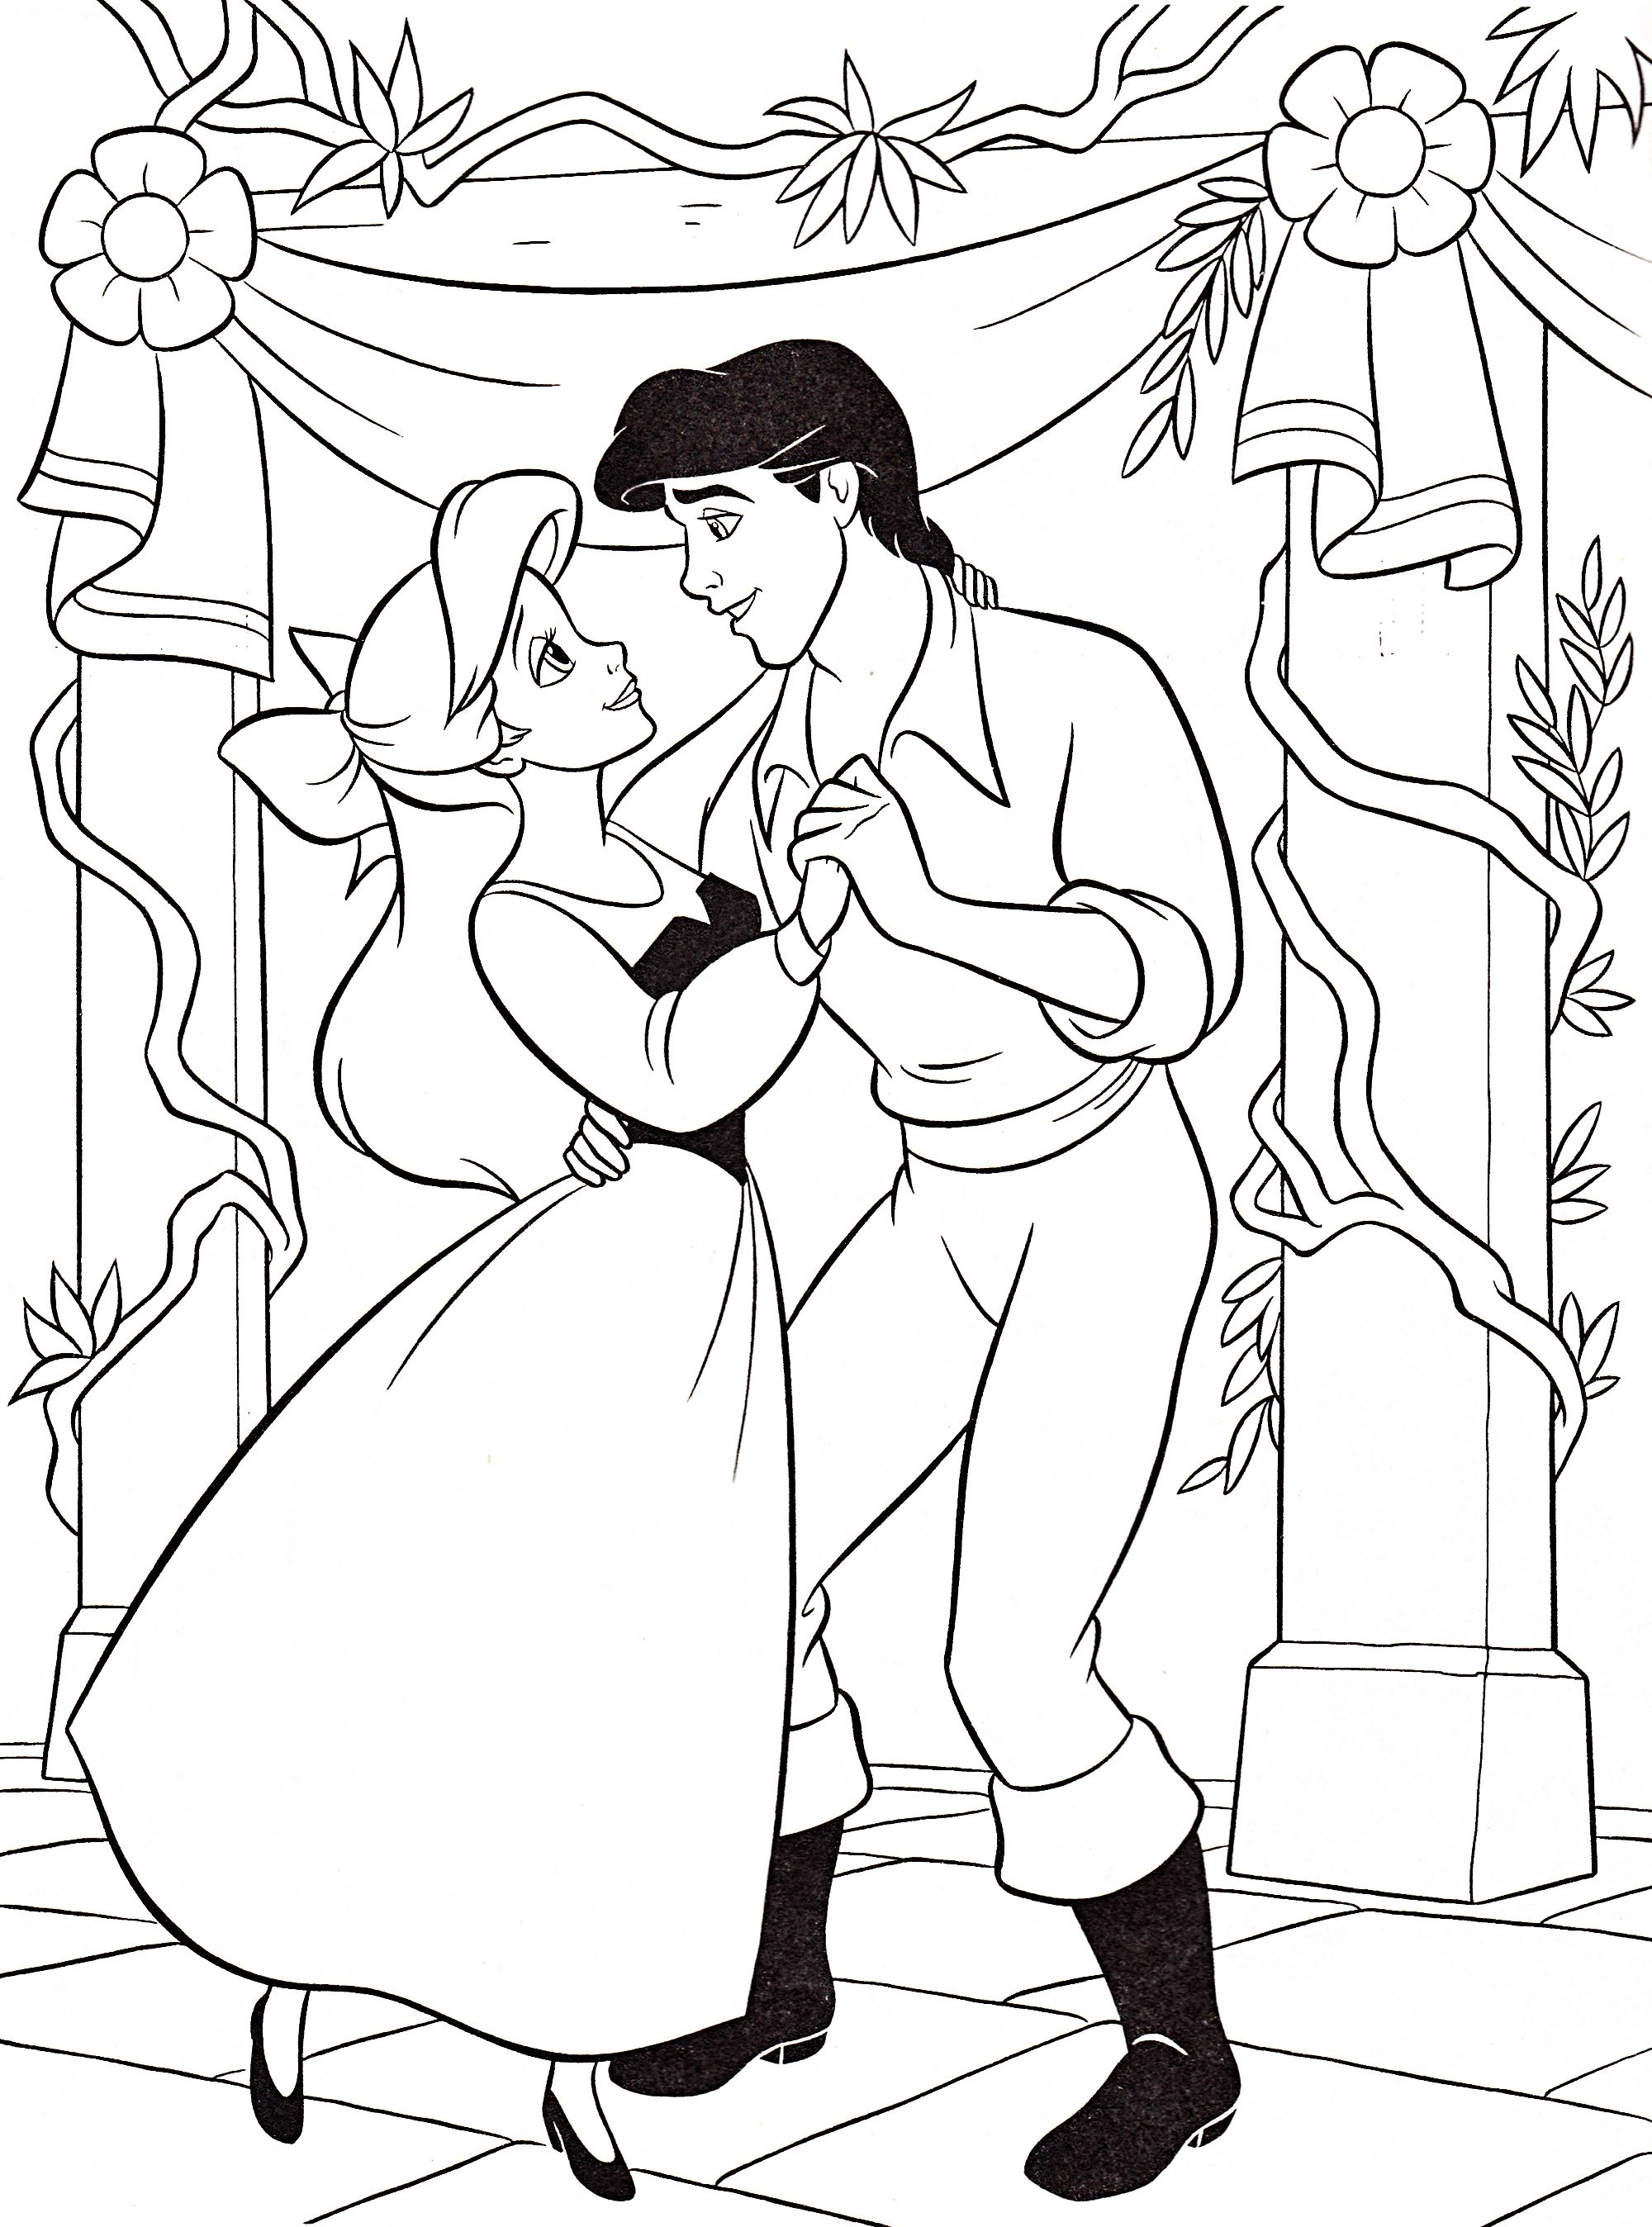 disney tangled coloring pages printable | Walt Disney Characters ...